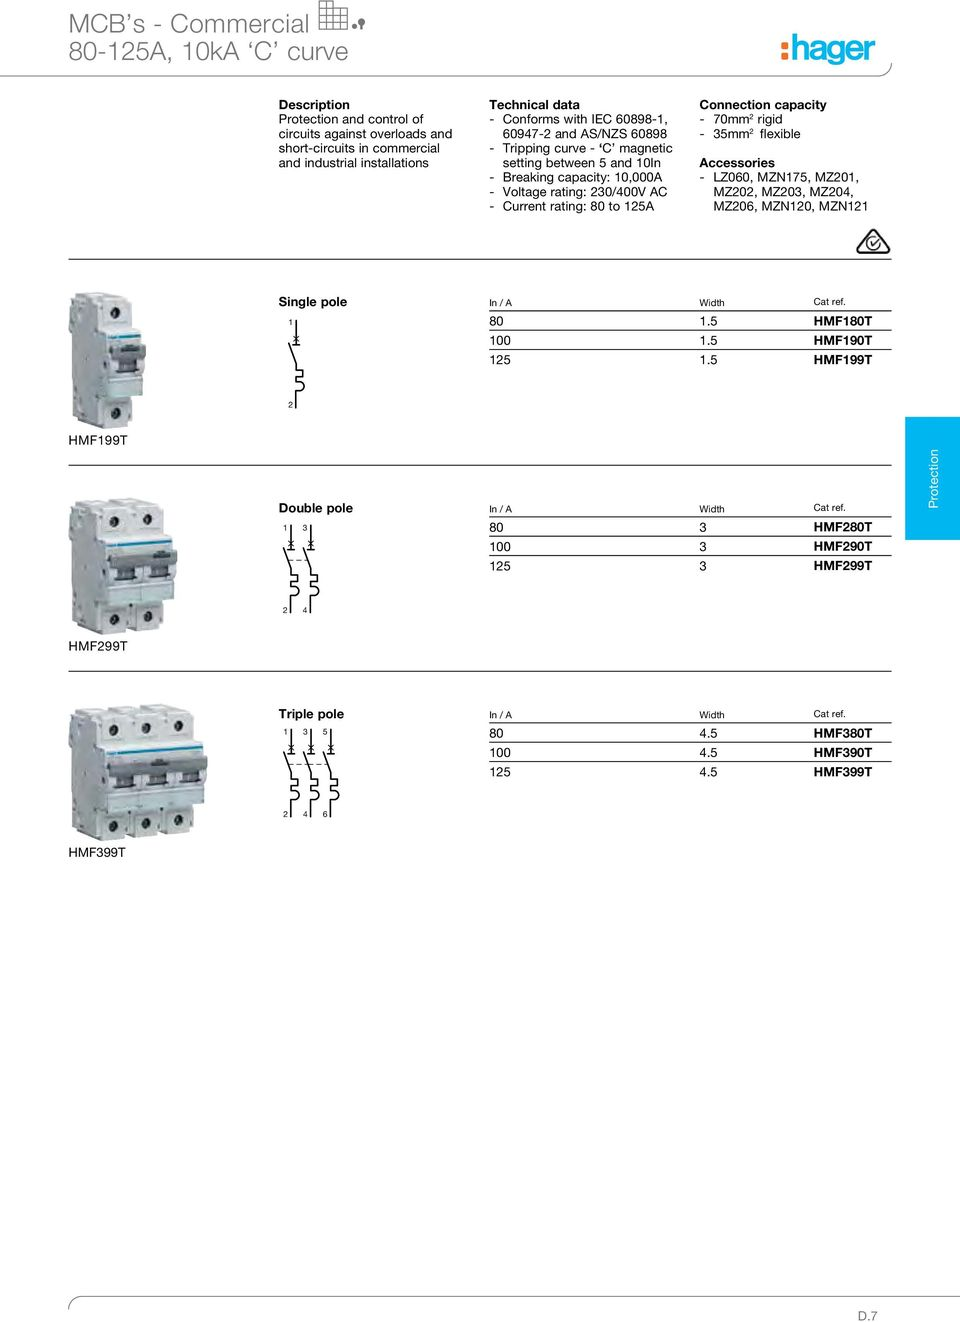 Protection Catalogue 15 Pdf Single Phase Contactor Wiring Diagram Need To Connect Hager Rigid 35mm 2 Flexible Accessories Lz060 Mz175 Mz201 Mz202 Mz203